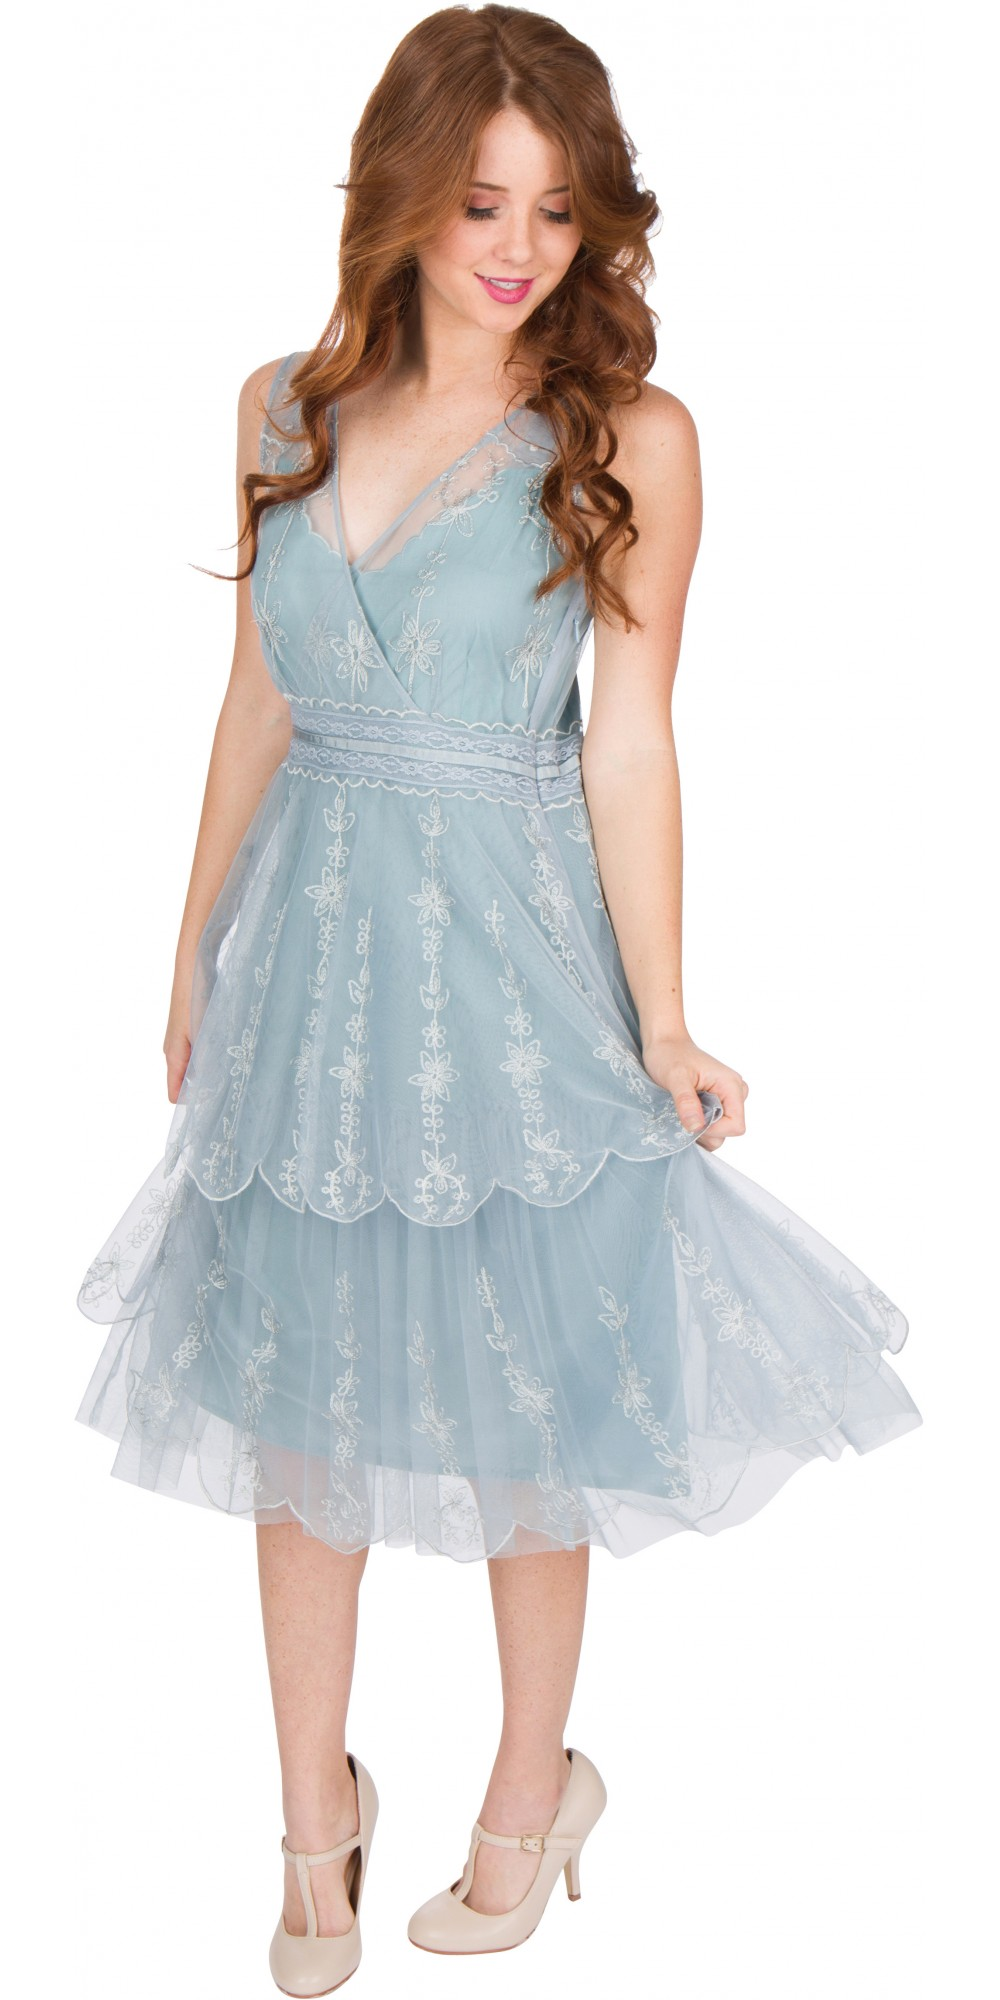 Age of Love Gianna AL-235 Vintage Style Party Dress in ...